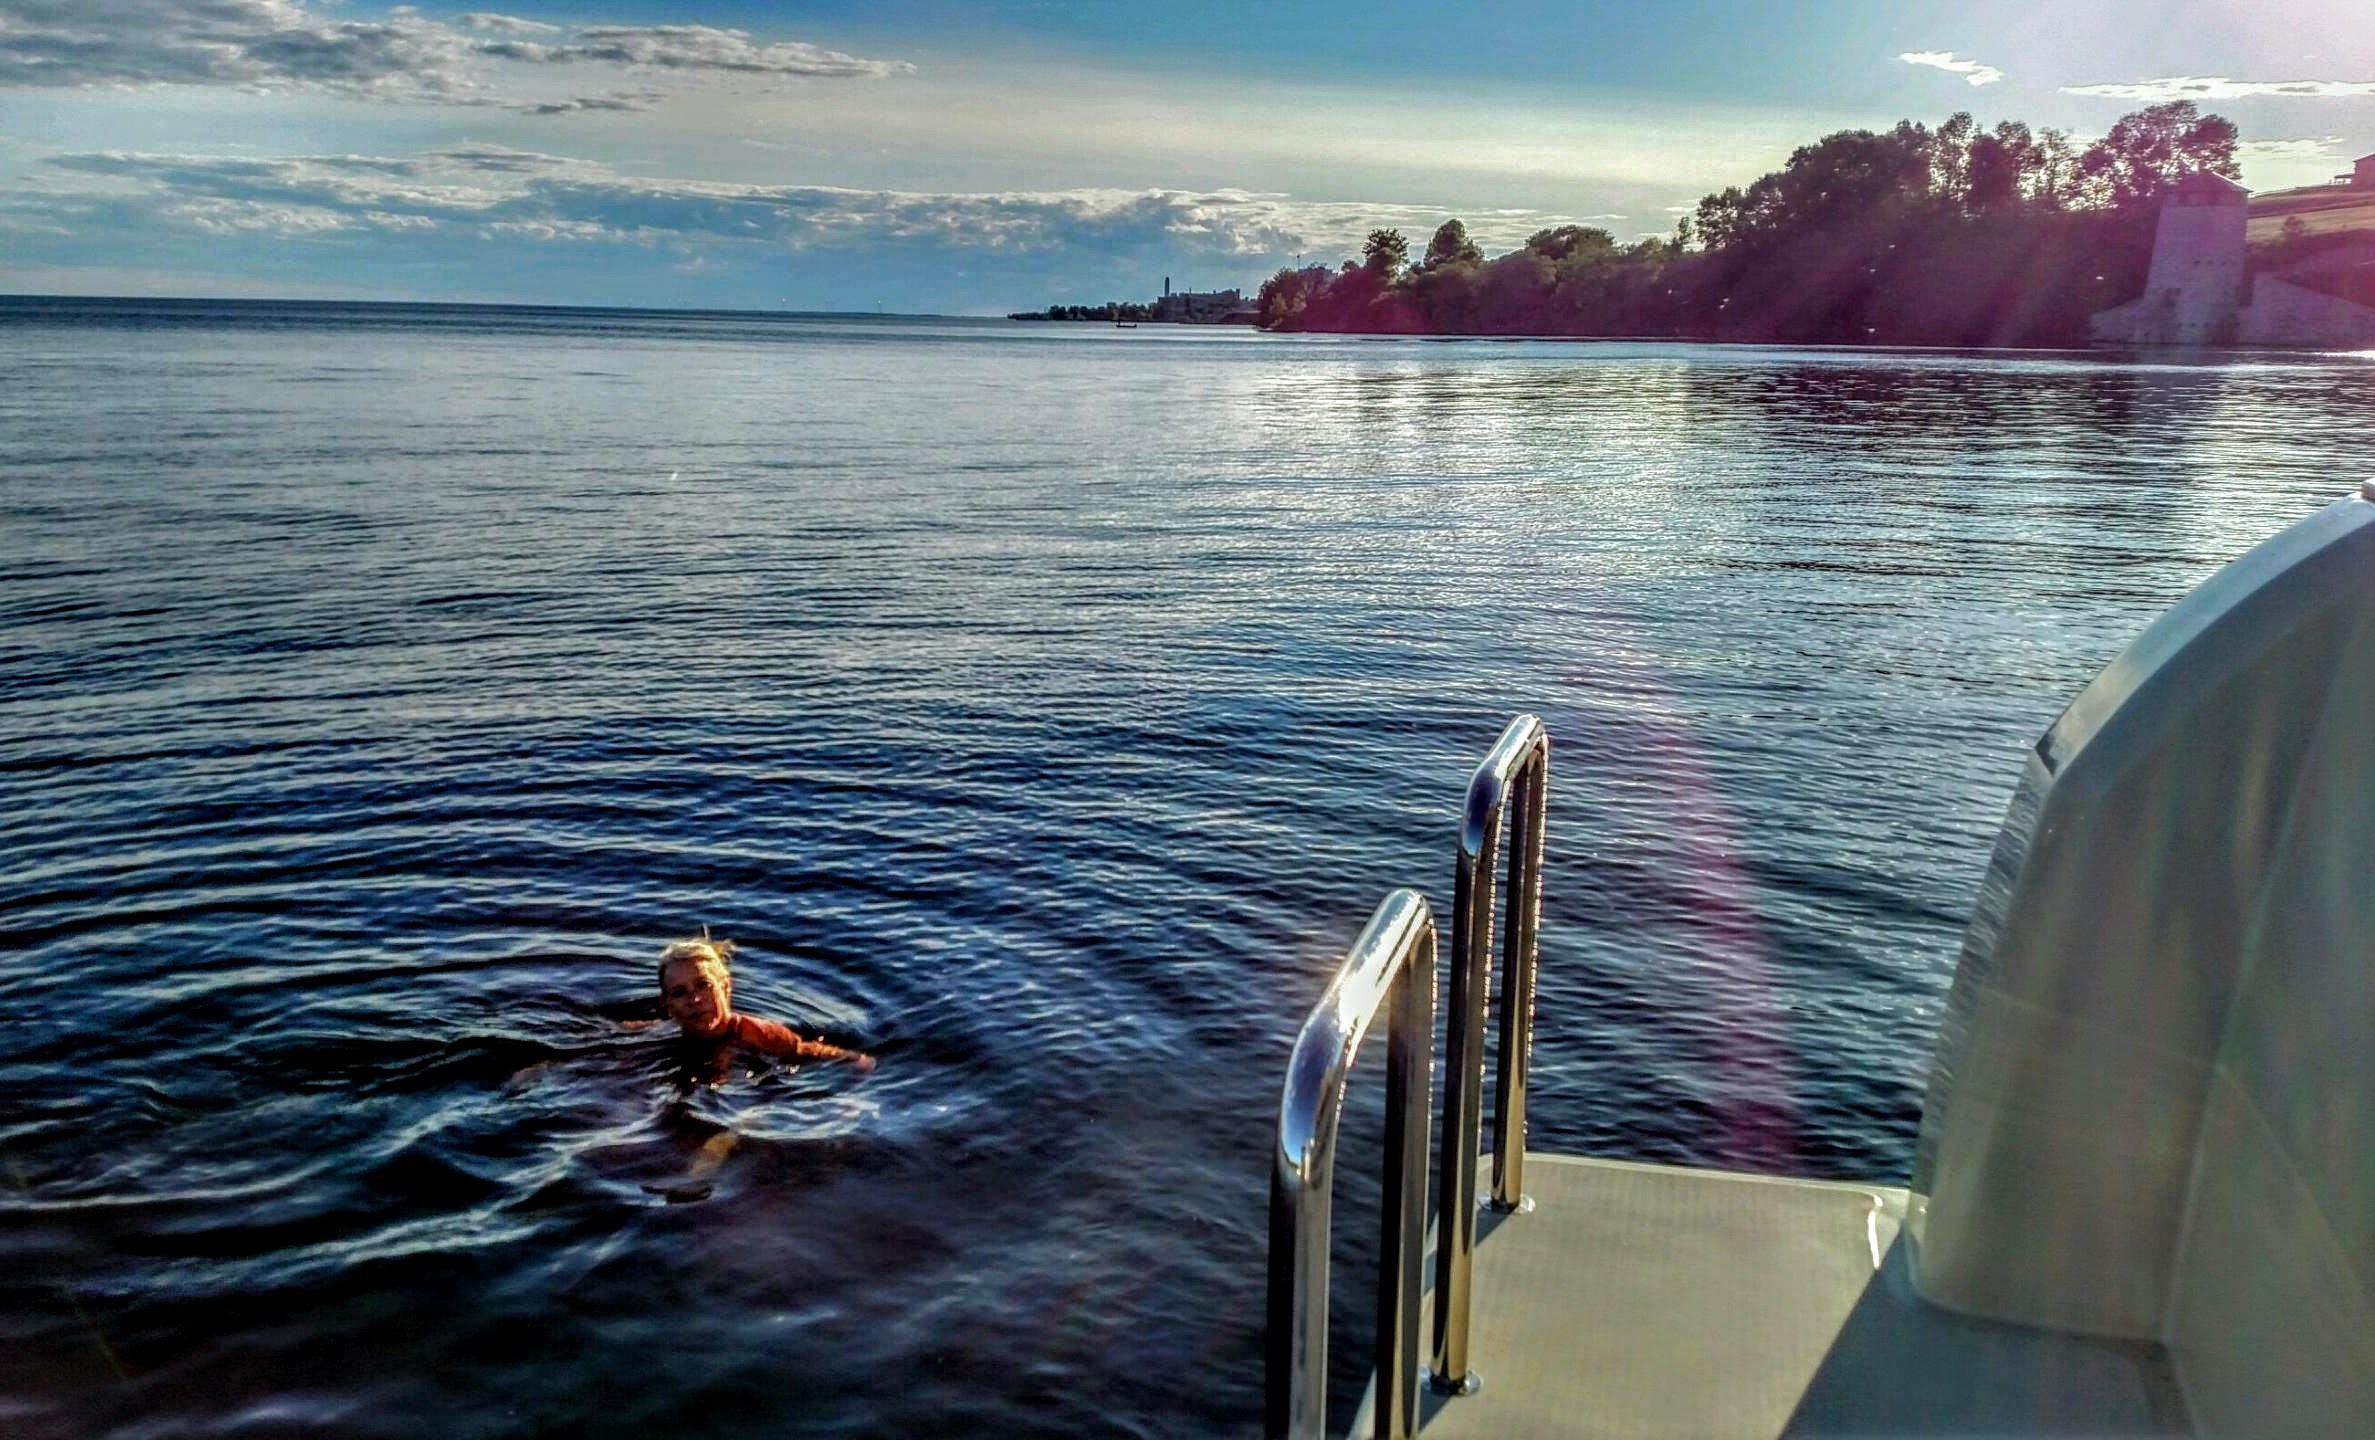 Celebrating Summer Solstice with a swim. Photo Larry McCullough